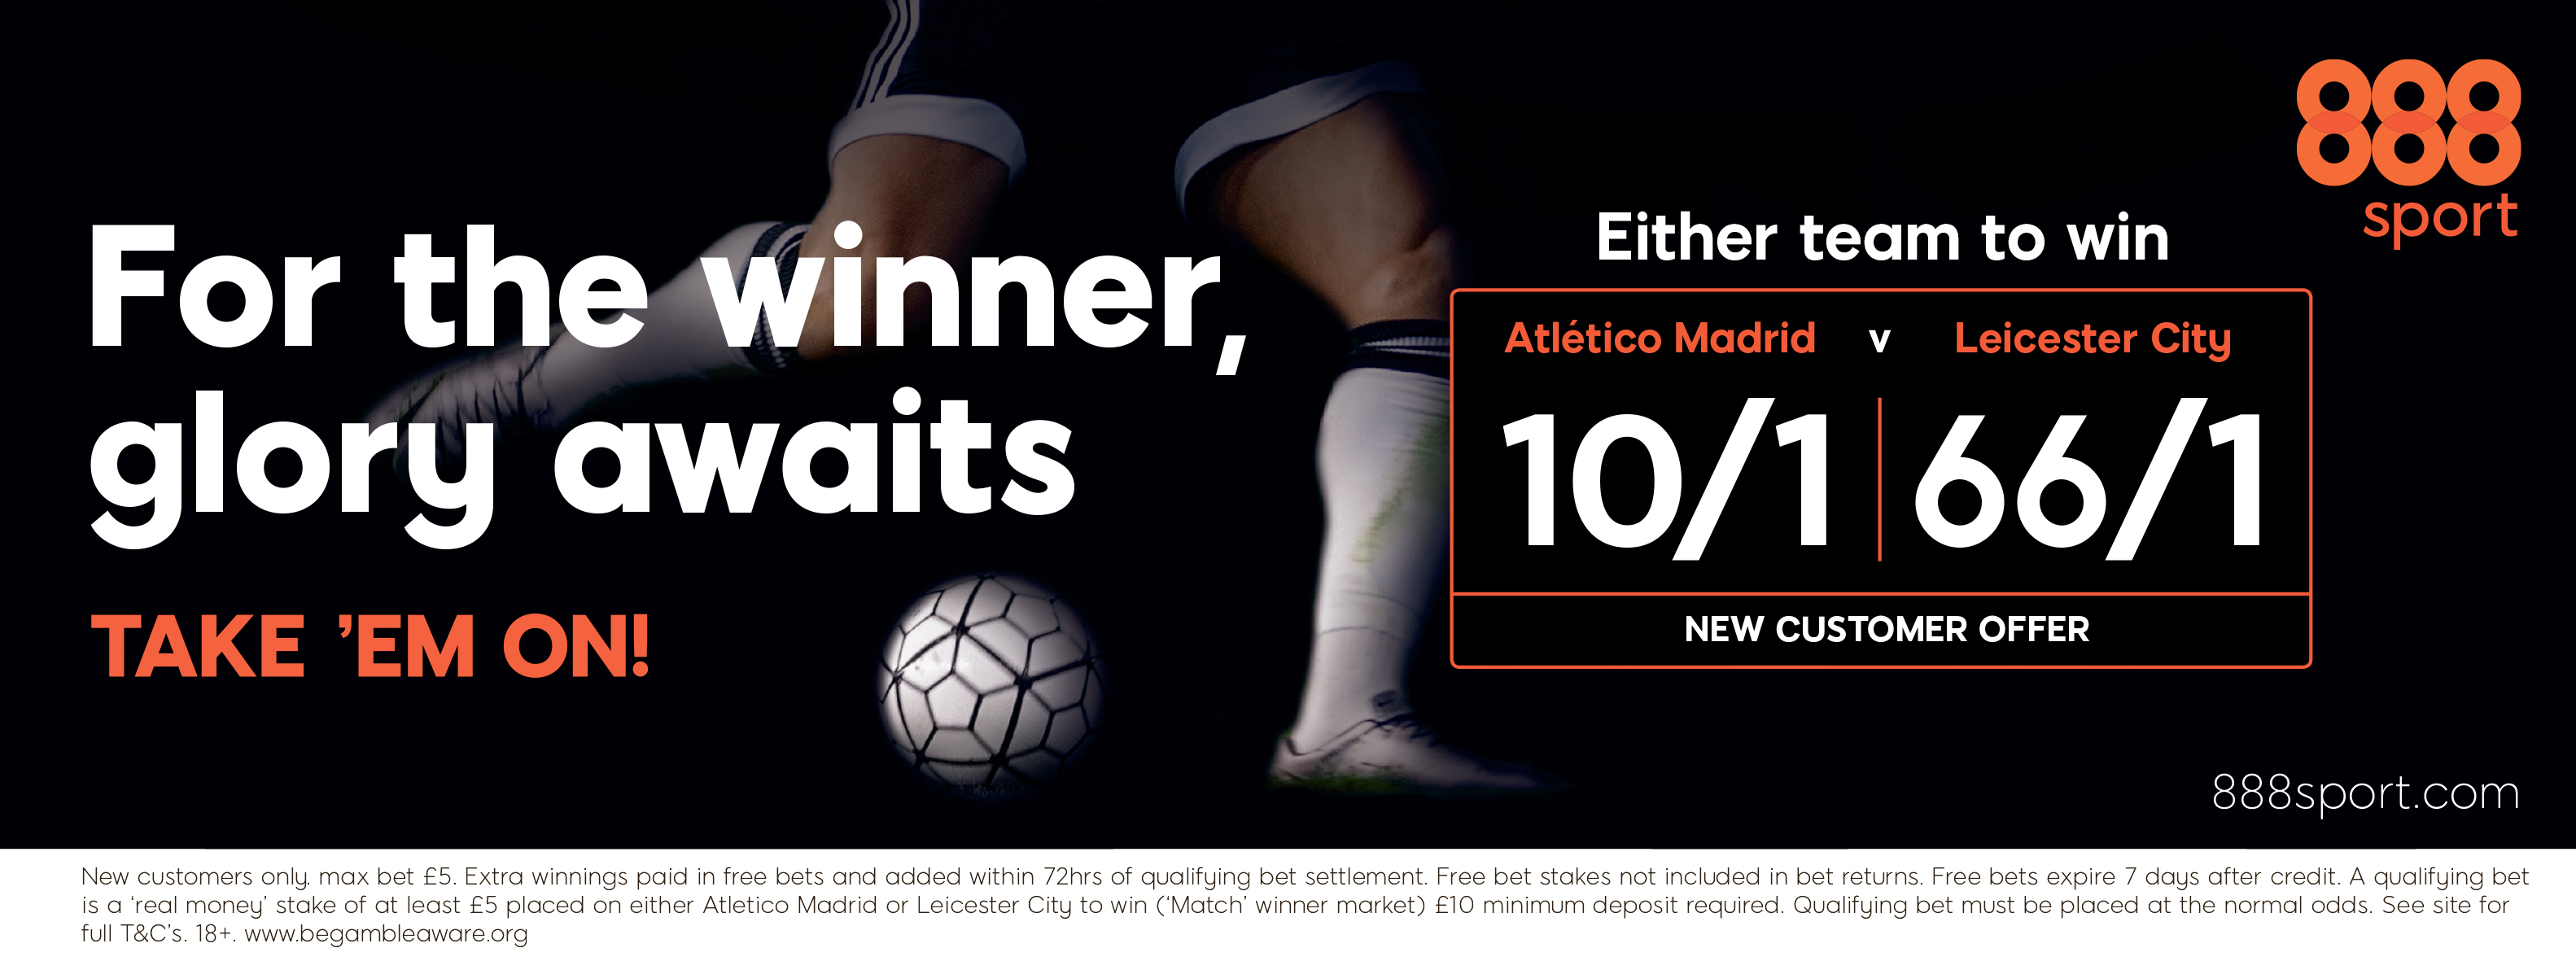 888sport Take 'Em On:  Atletico Madrid vs Leicester City